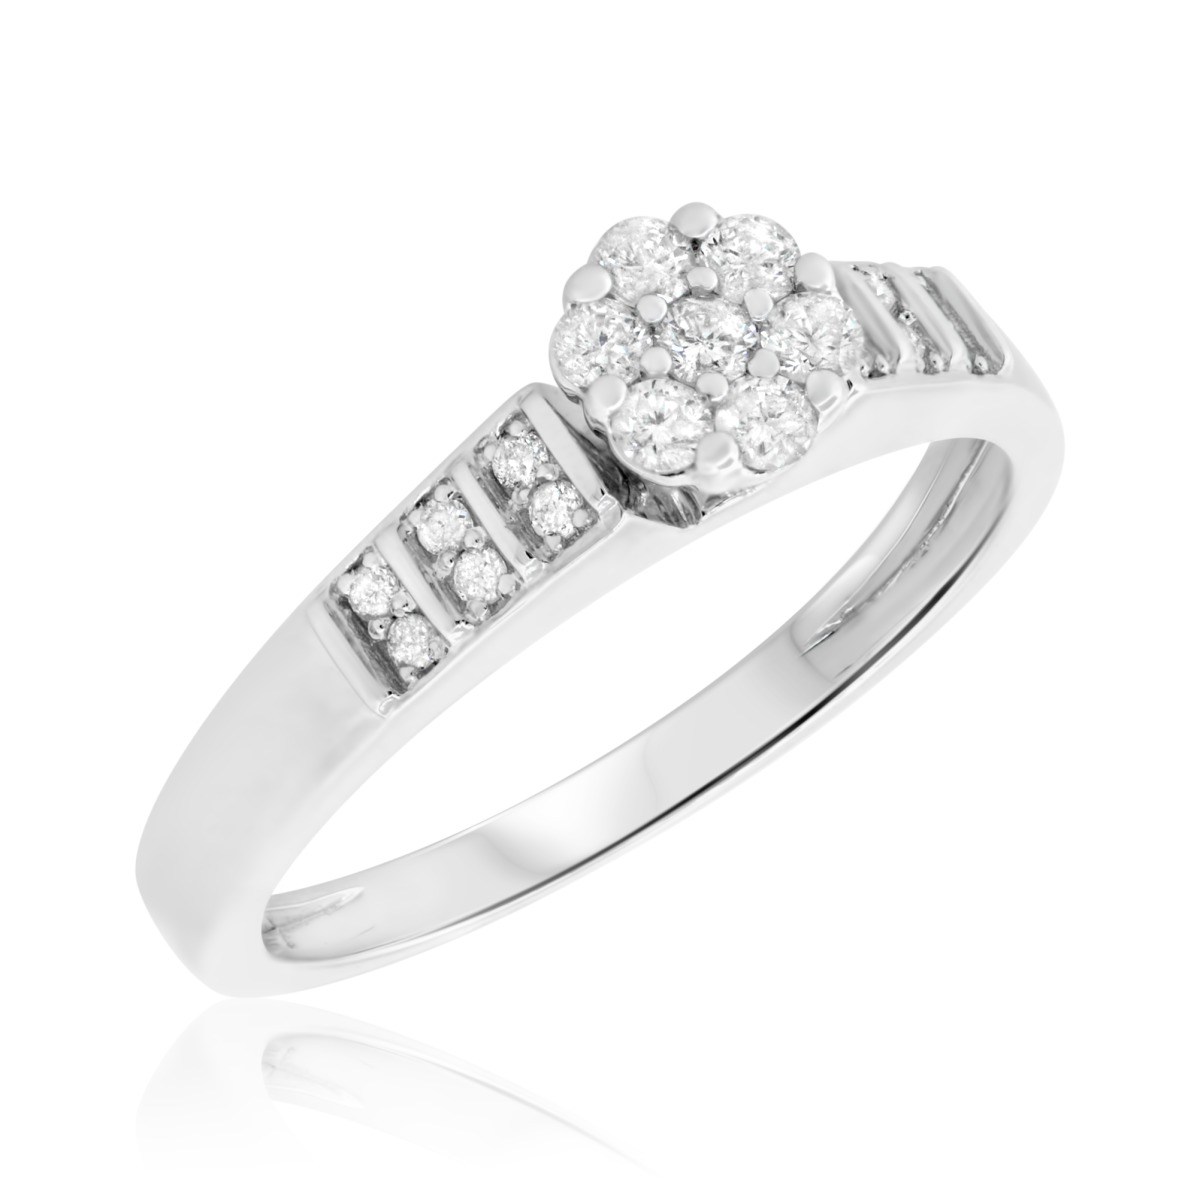 1/4 CT. T.W. Diamond Ladies' Engagement Ring 10K White Gold